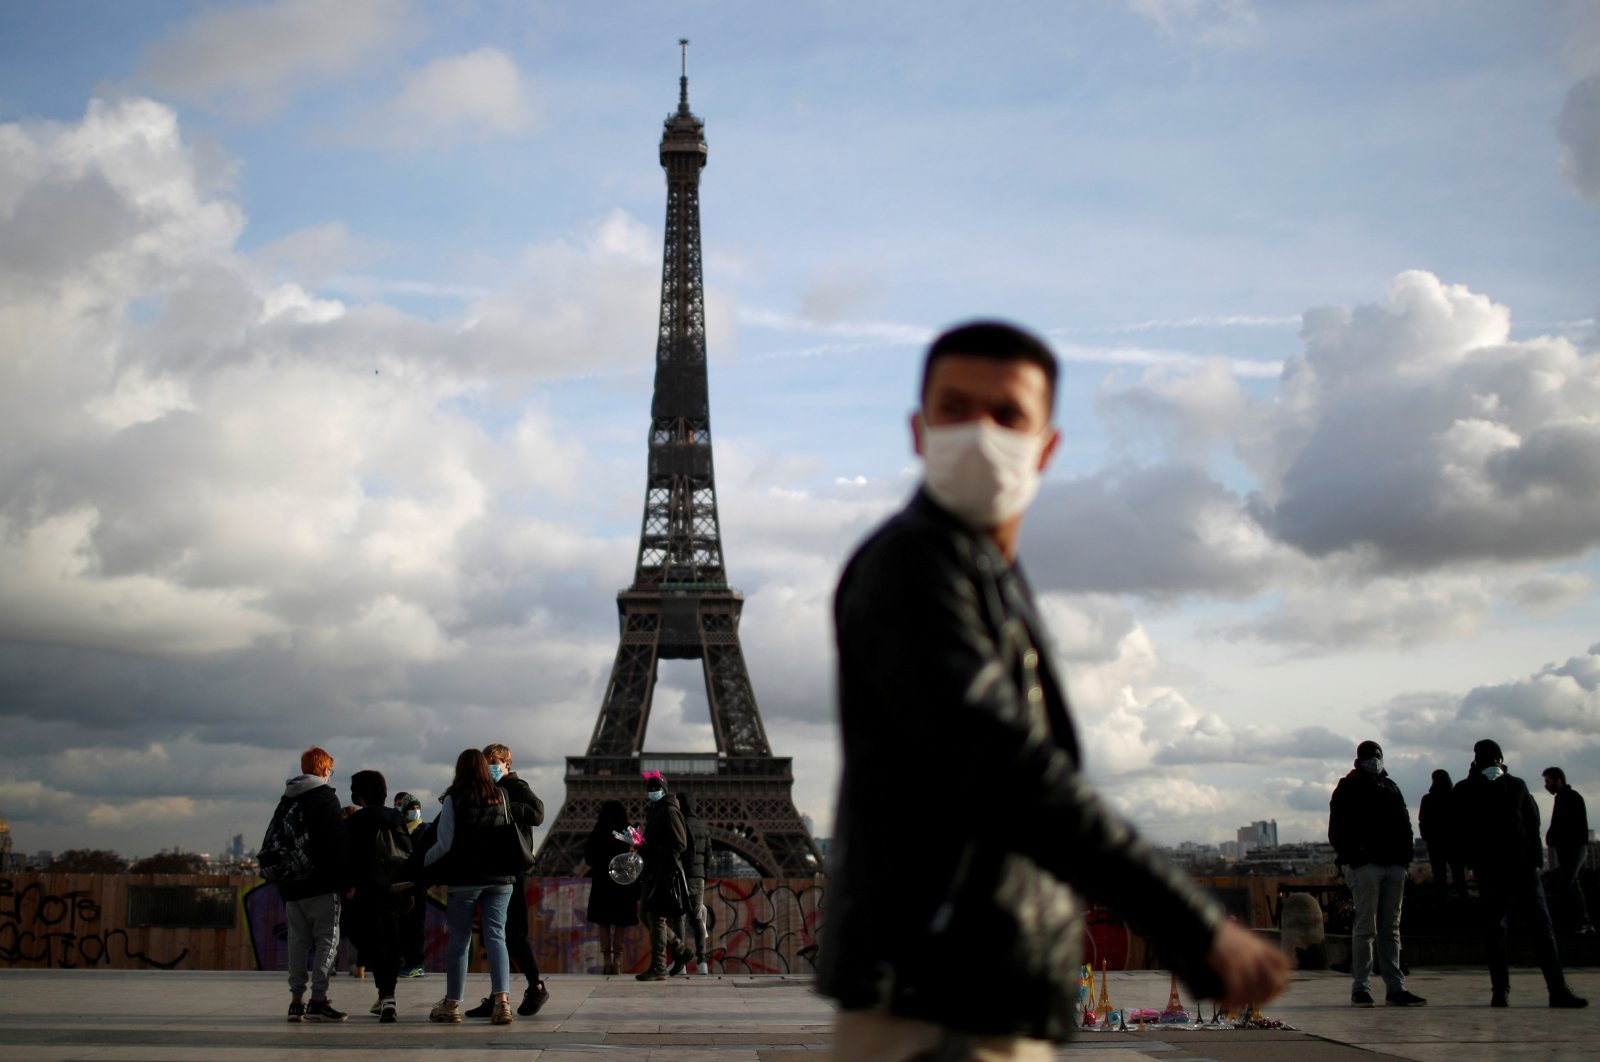 A man wearing a protective face mask walks at Trocadero square near the Eiffel Tower in Paris amid the coronavirus disease outbreak in France, January 22, 2021. (Reuters Photo)